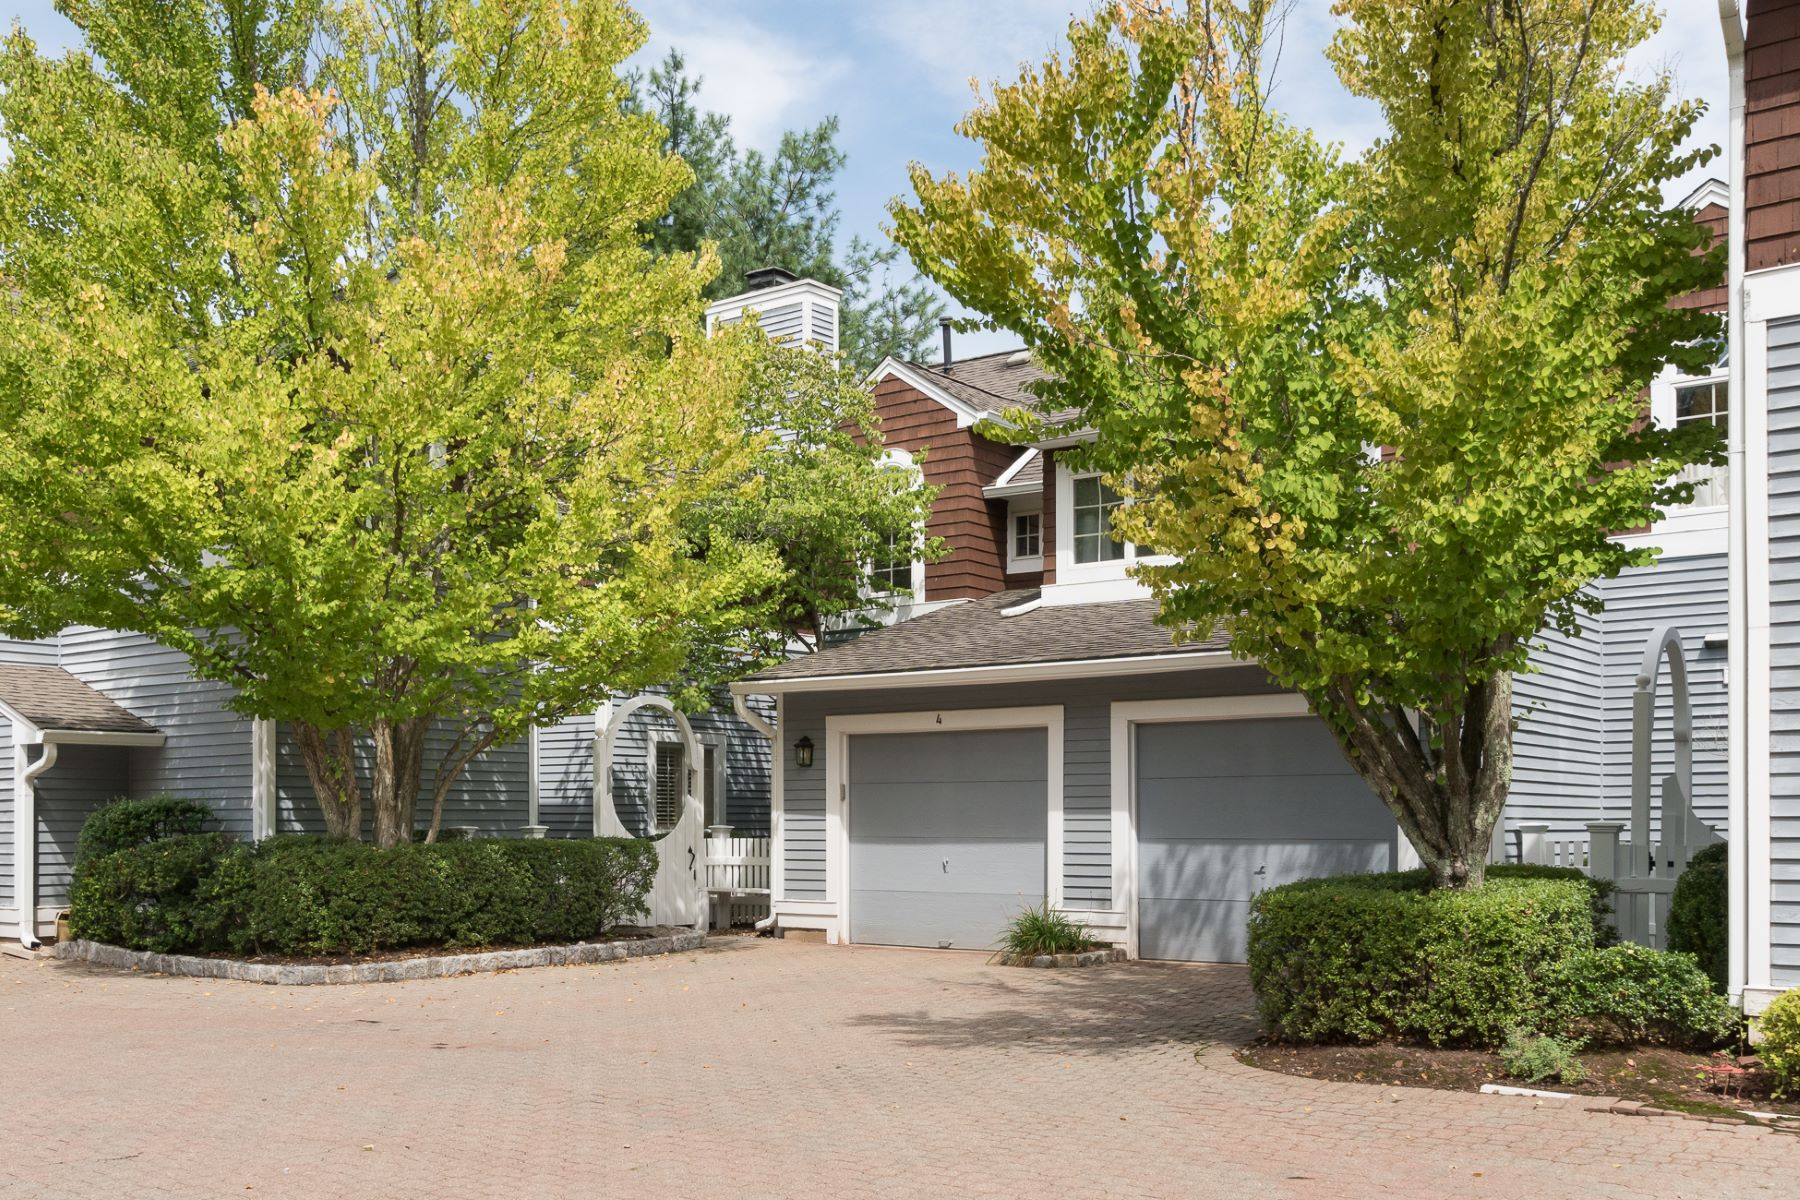 Condominiums for Sale at A Standout in the Railroad Place Townhome Community 4 Railroad Place, Pennington, New Jersey 08534 United States